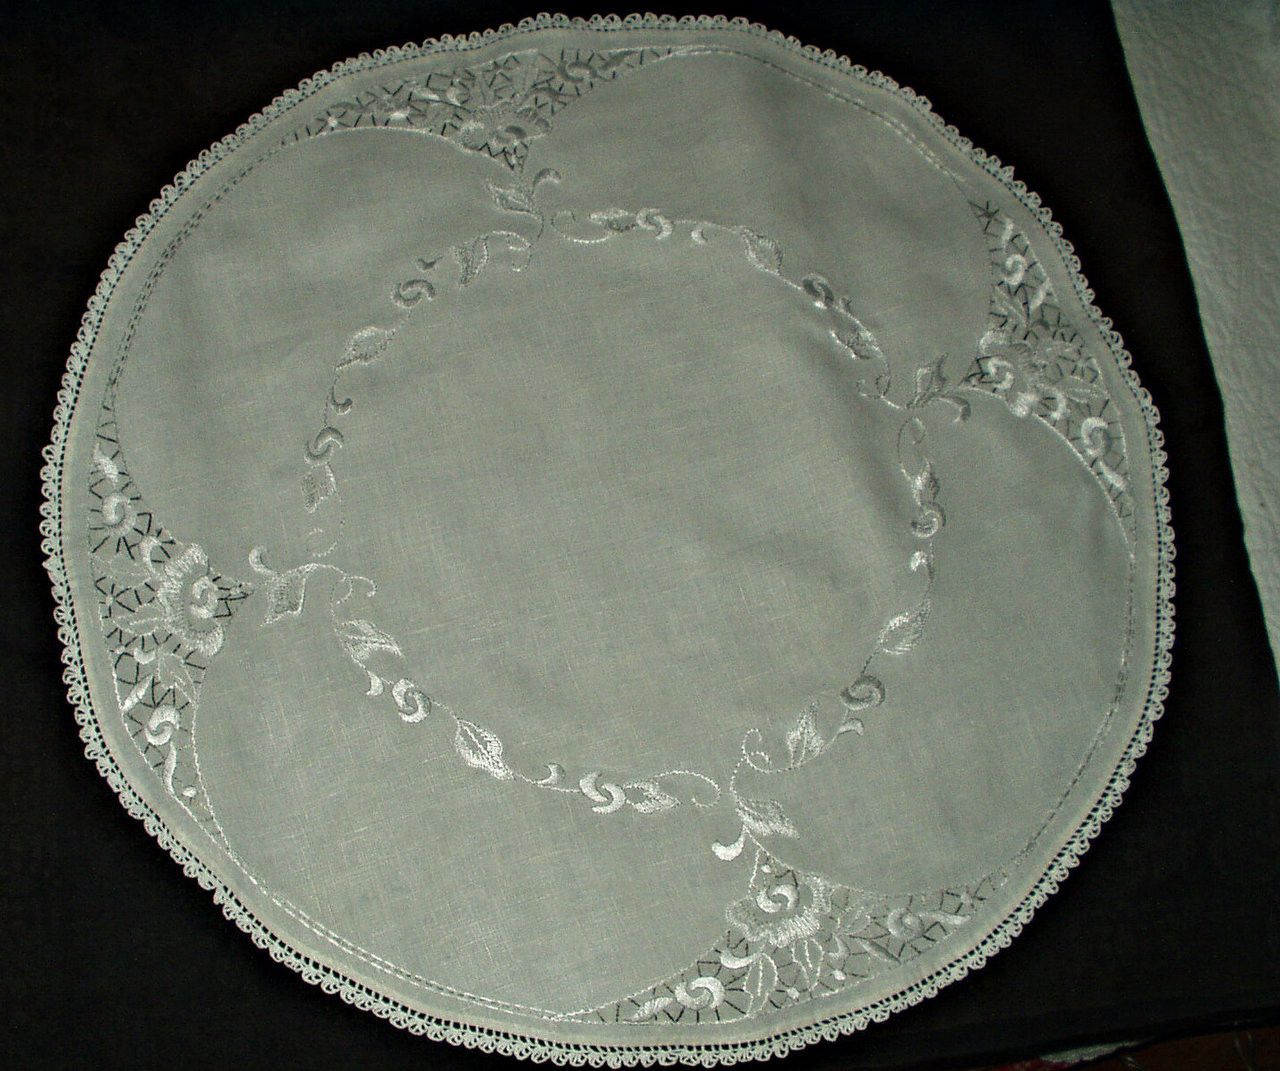 Vintage 1930s Gray White Embroidery 30 Inch Round Linen Center Piece Doily Tablecloth The